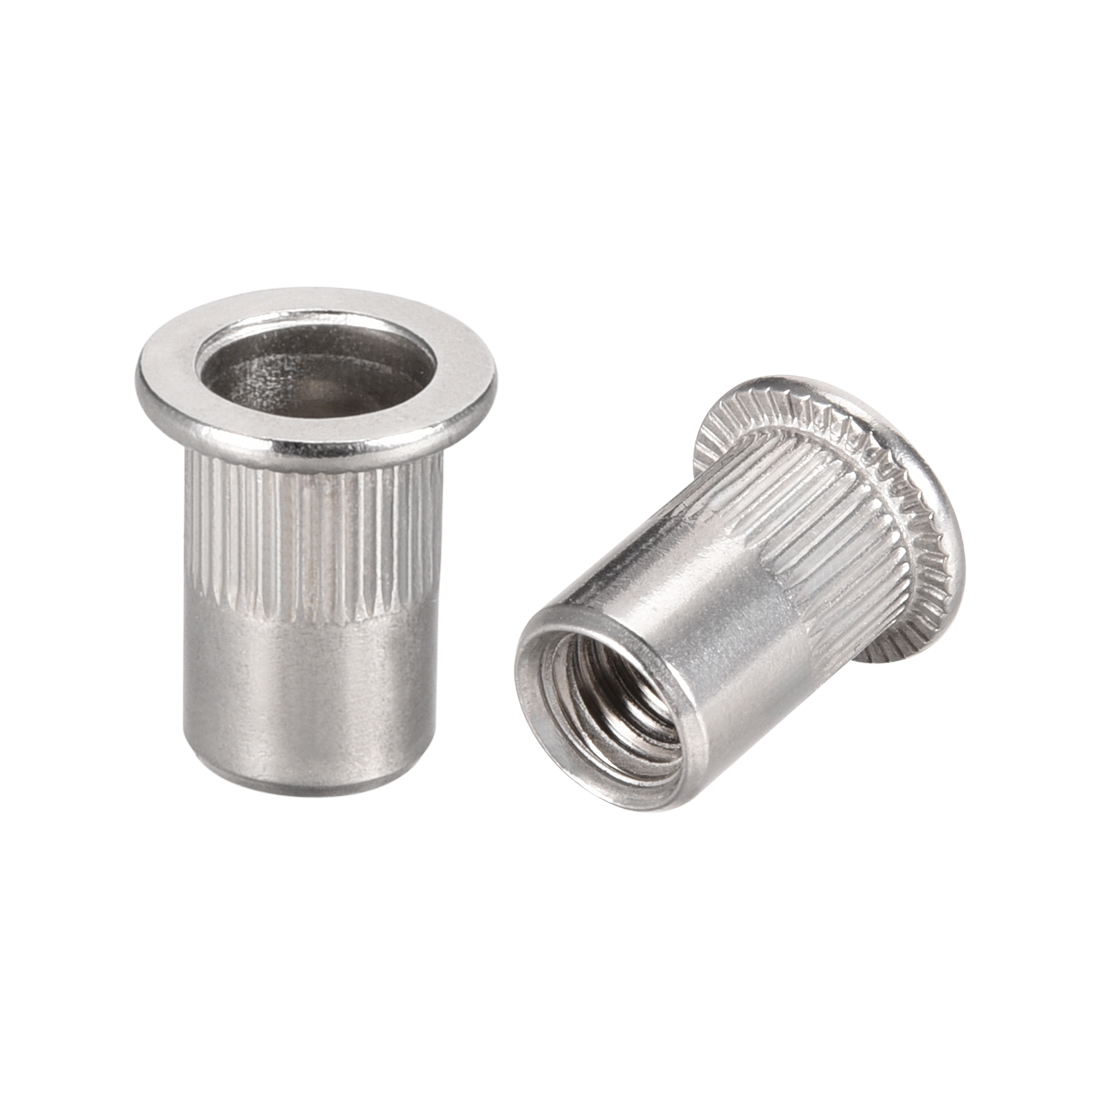 uxcell M4 304 Stainless Steel Rivet Nuts Flat Head Insert Nutsert 20 Pcs